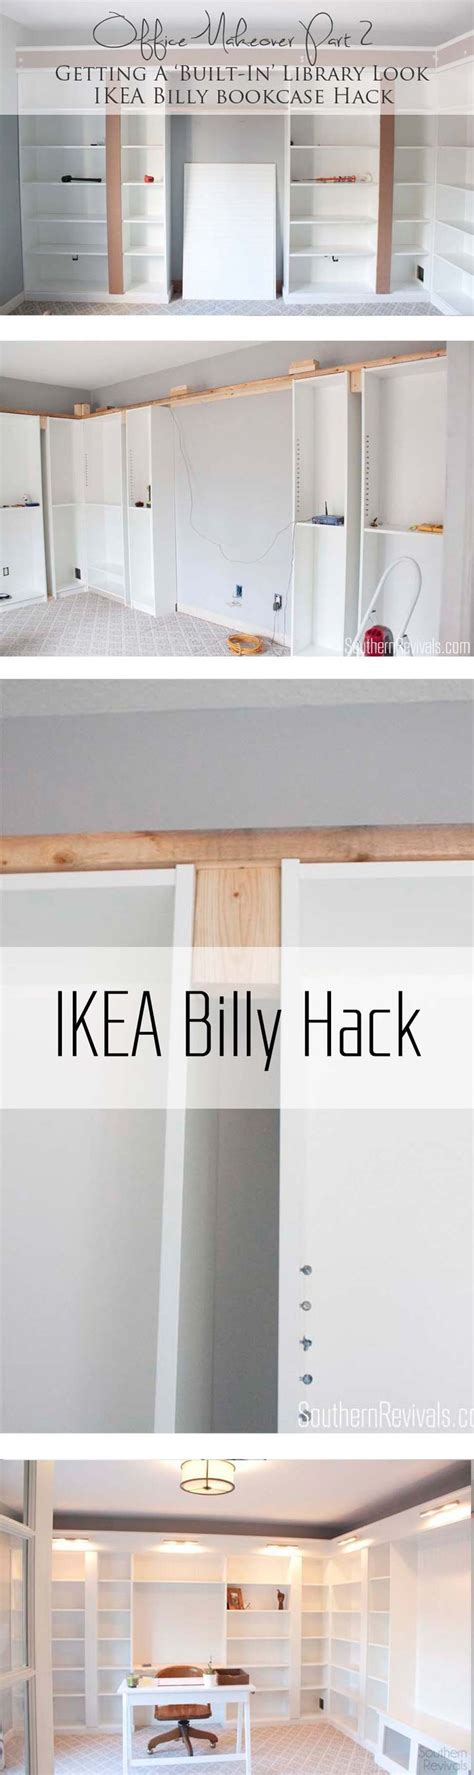 ikea sektion hacks 233 best images about ikea hacks on pinterest ikea